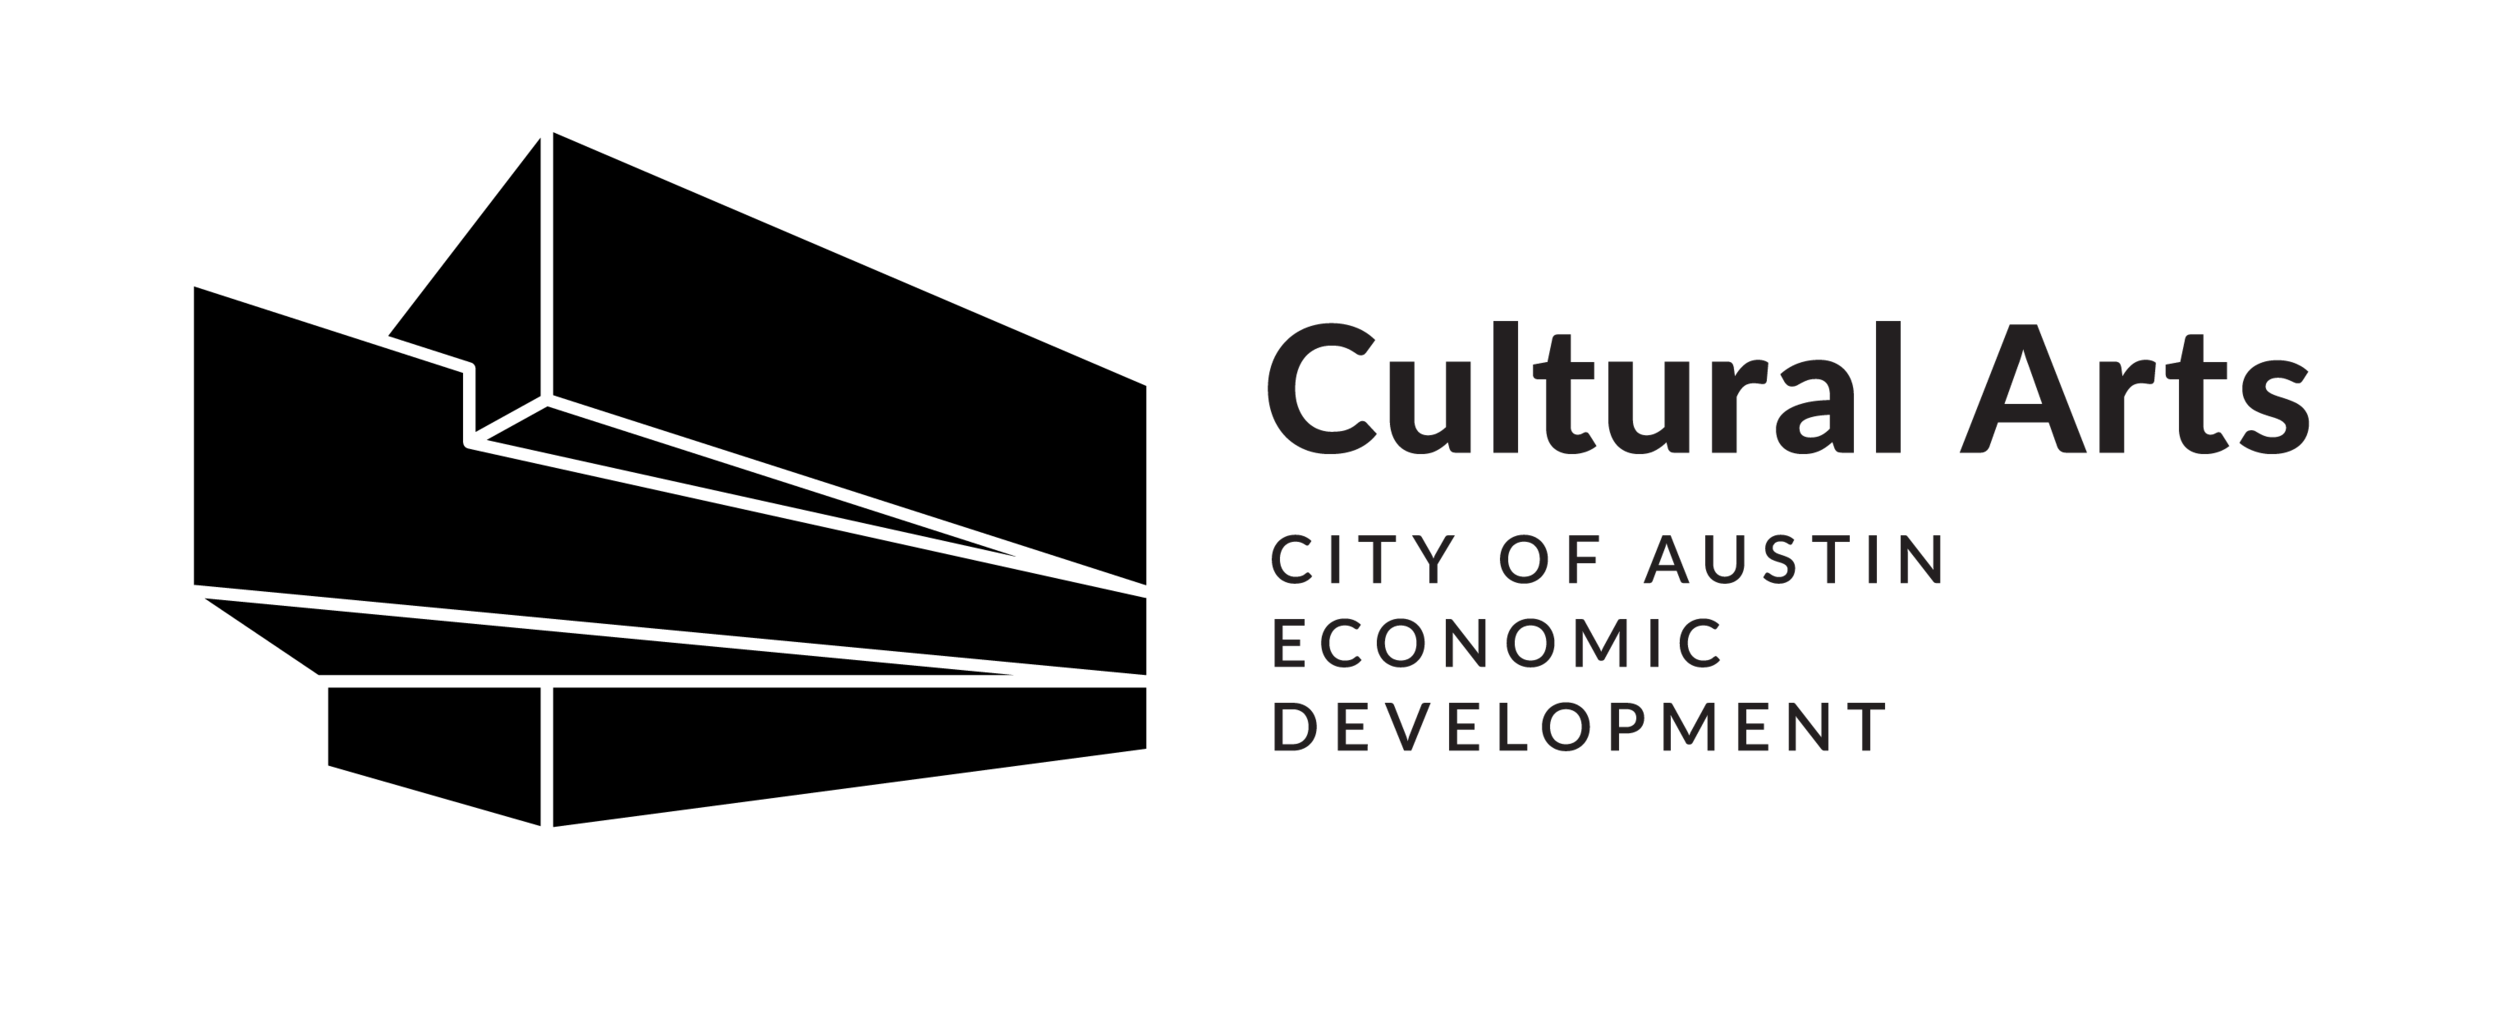 This project is supported in part by the Cultural Arts Division of the City of Austin Economic Development Department.